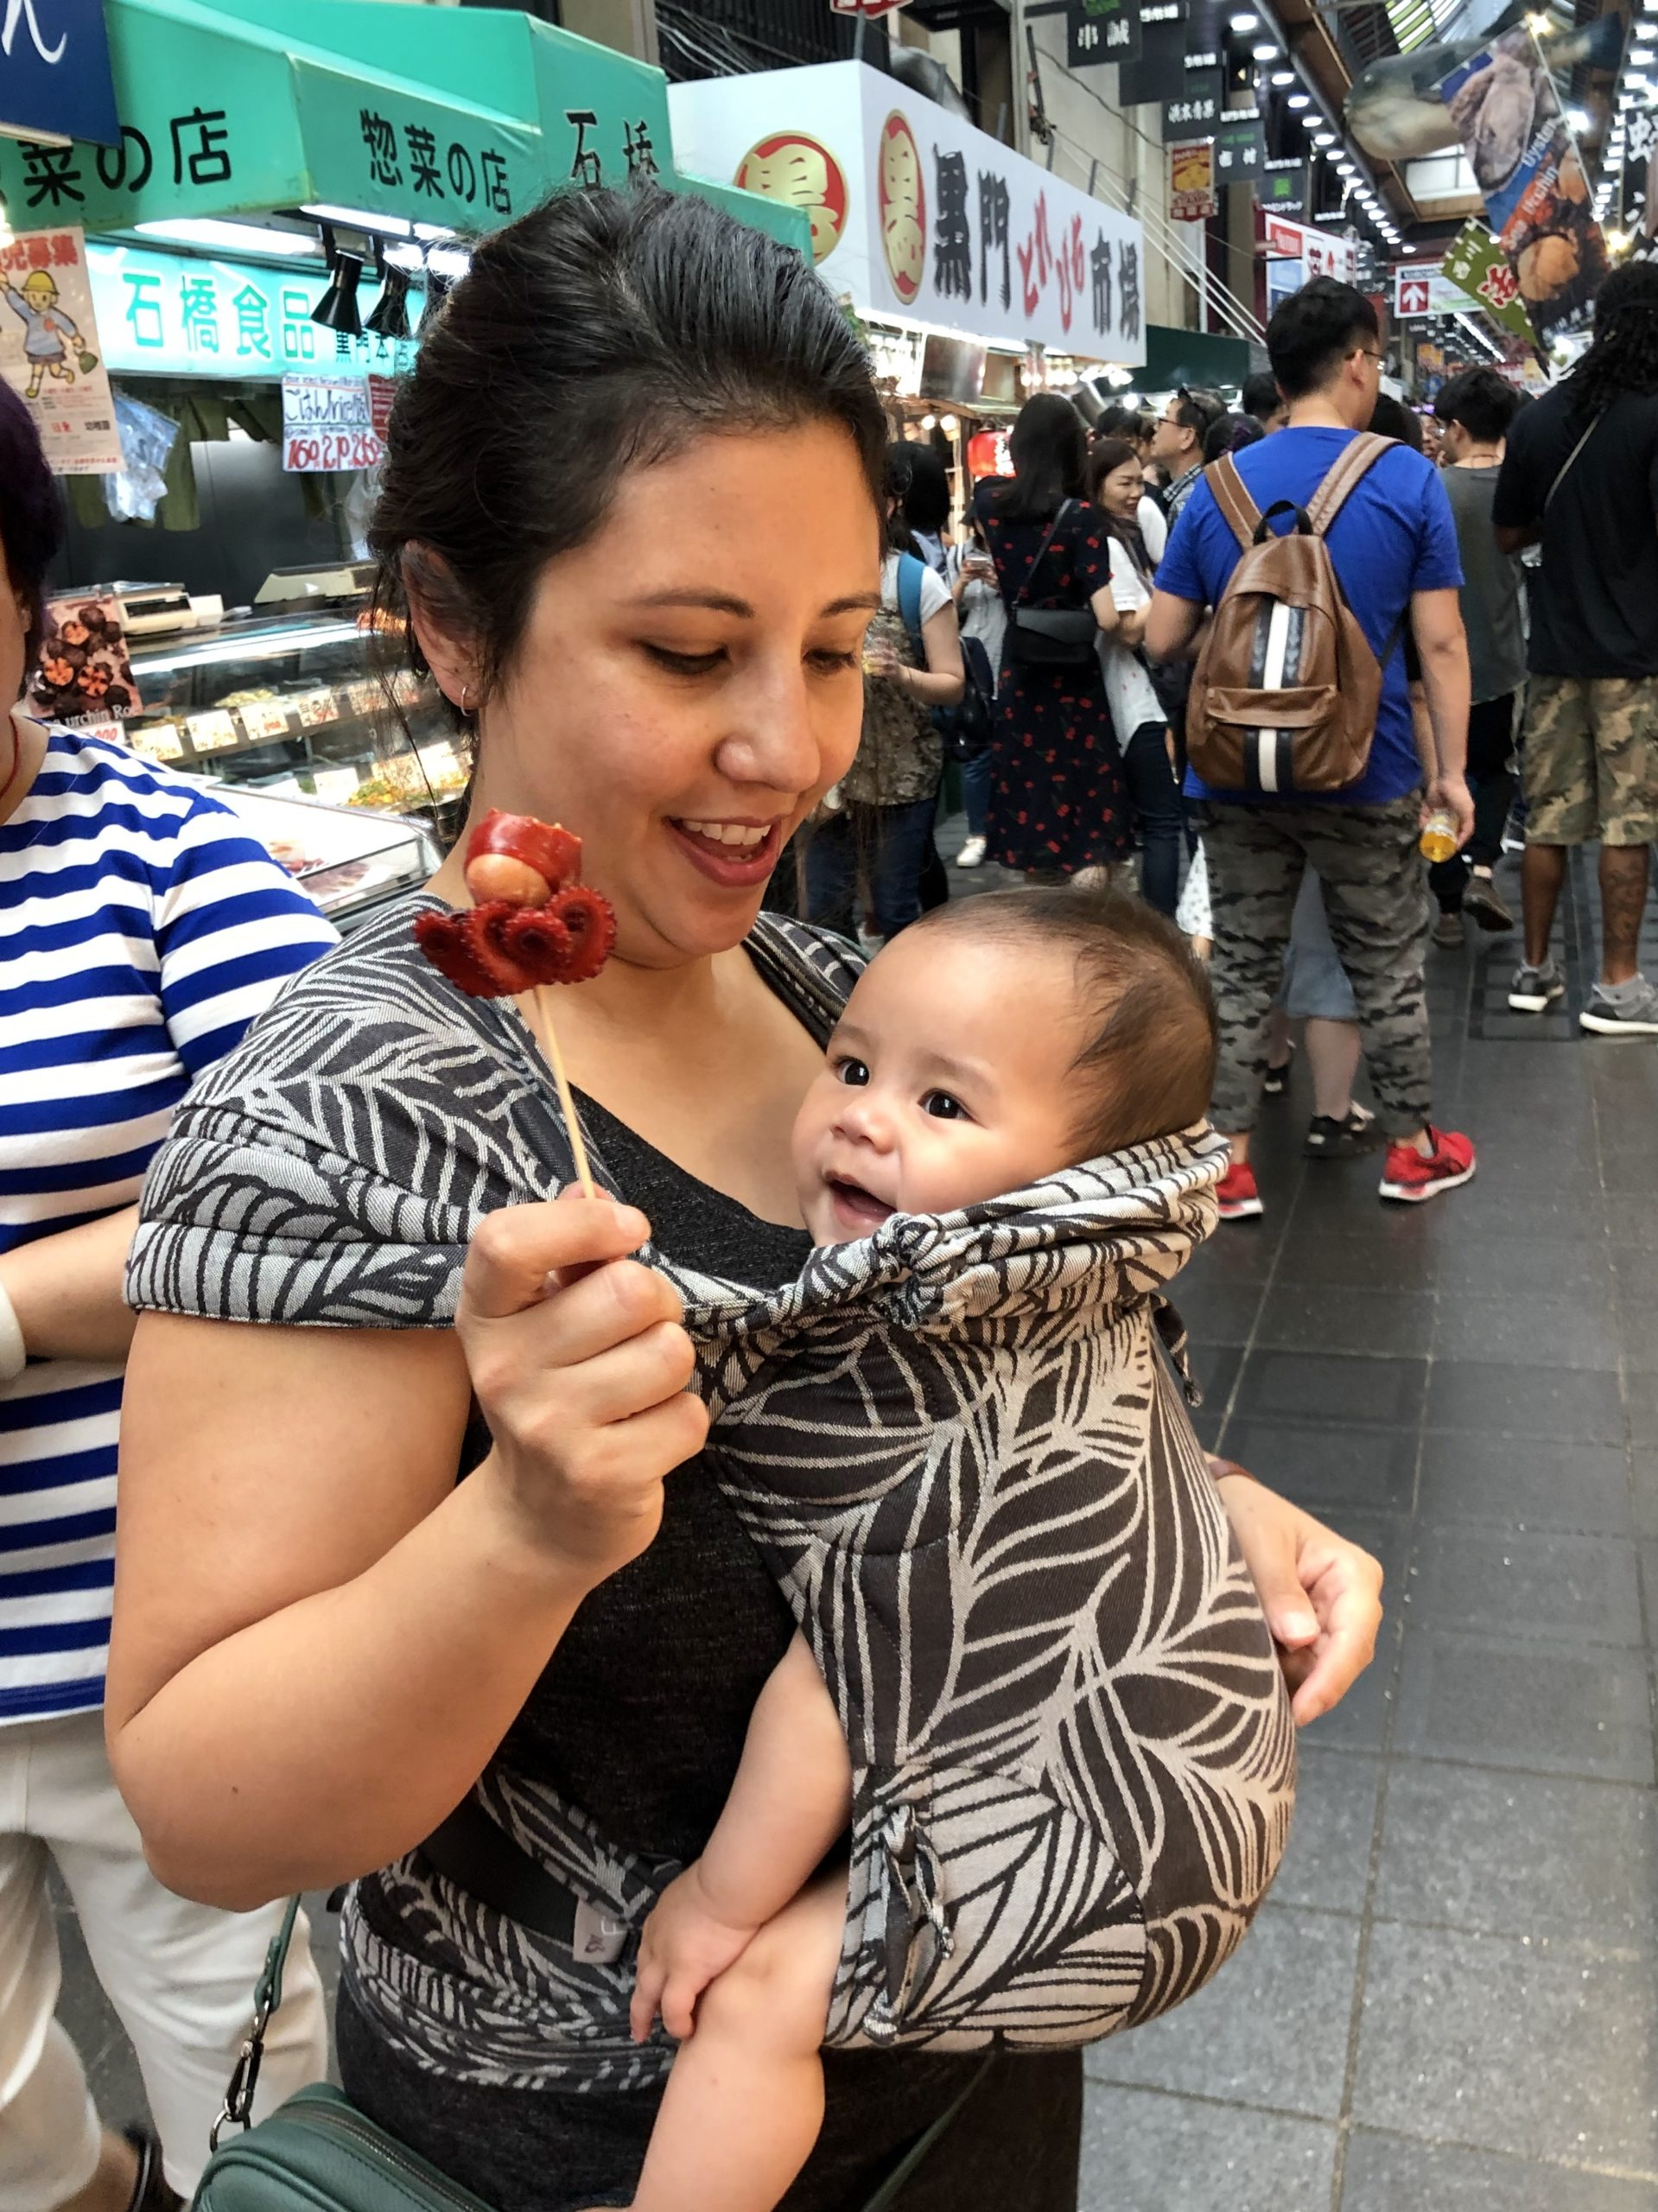 Mum with baby in carrier, holding a baby octopus on a stick